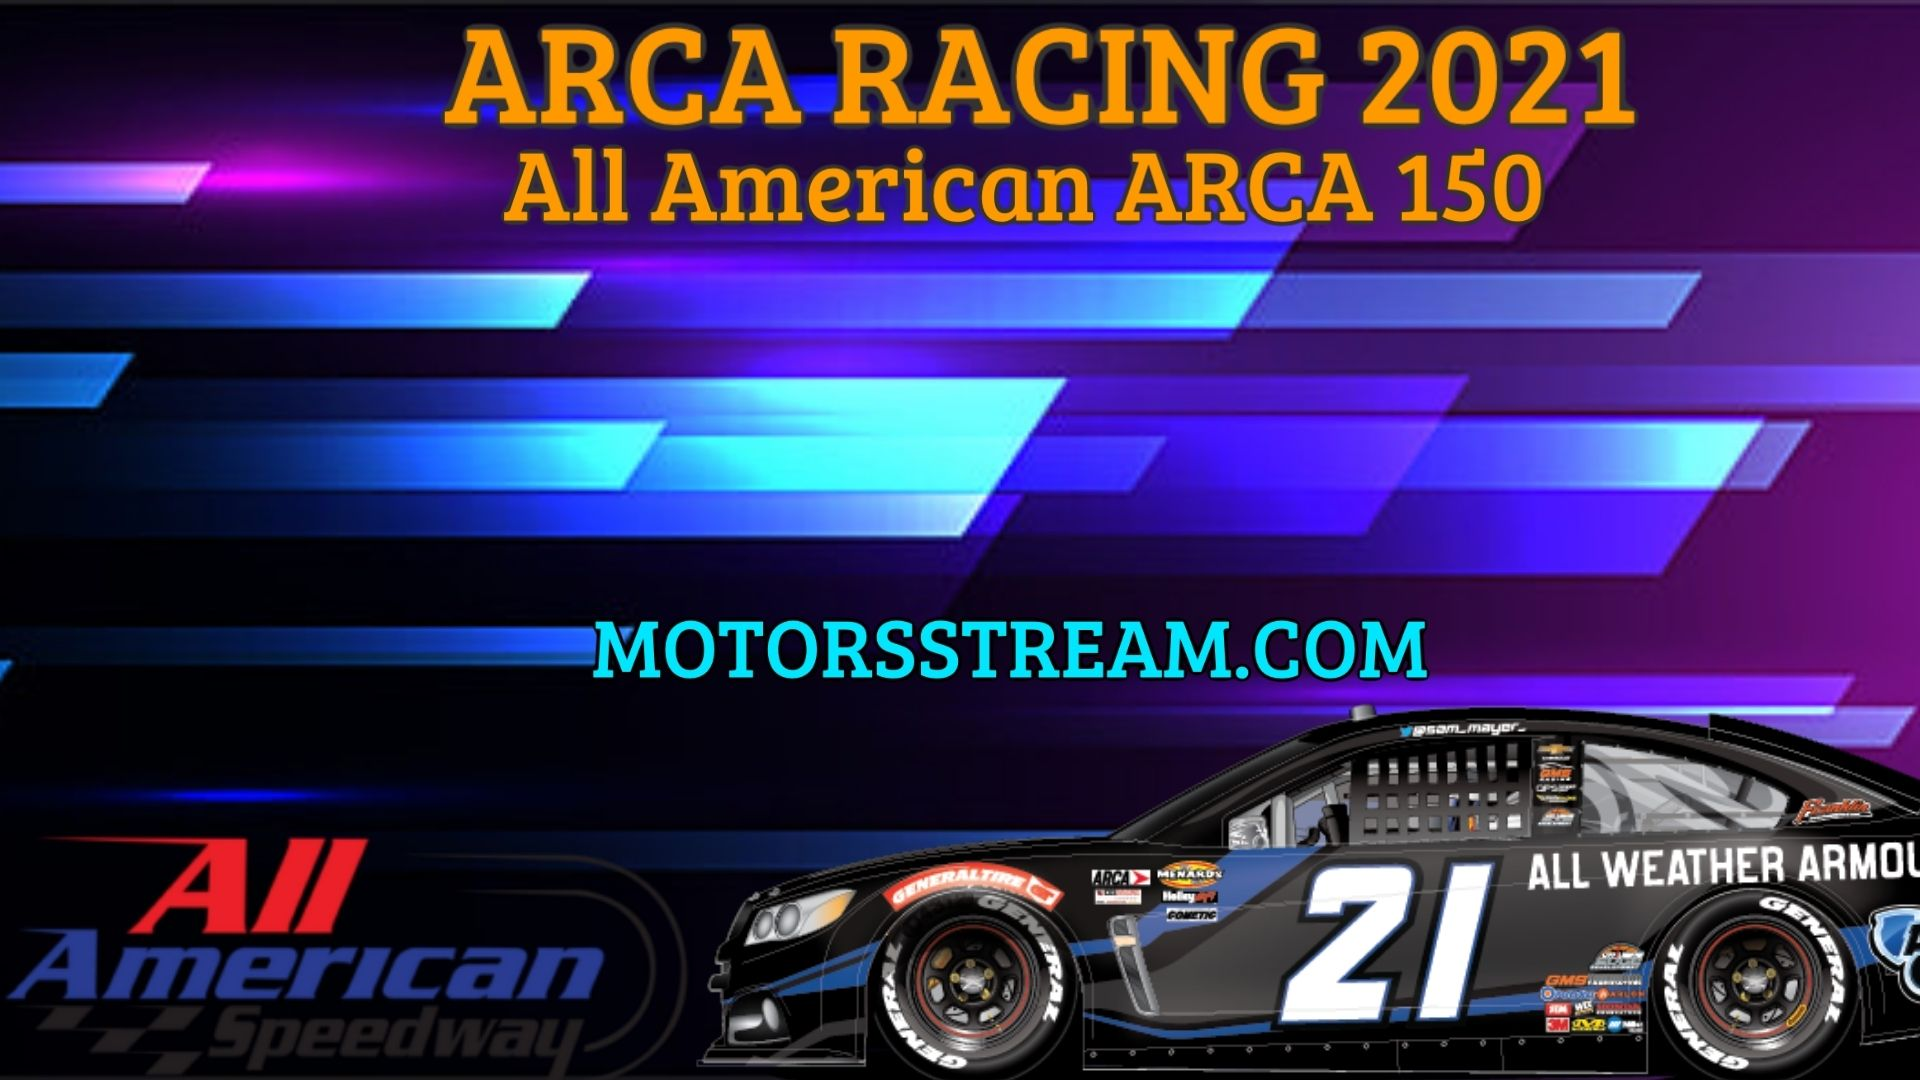 All American ARCA 150 Live Streaming